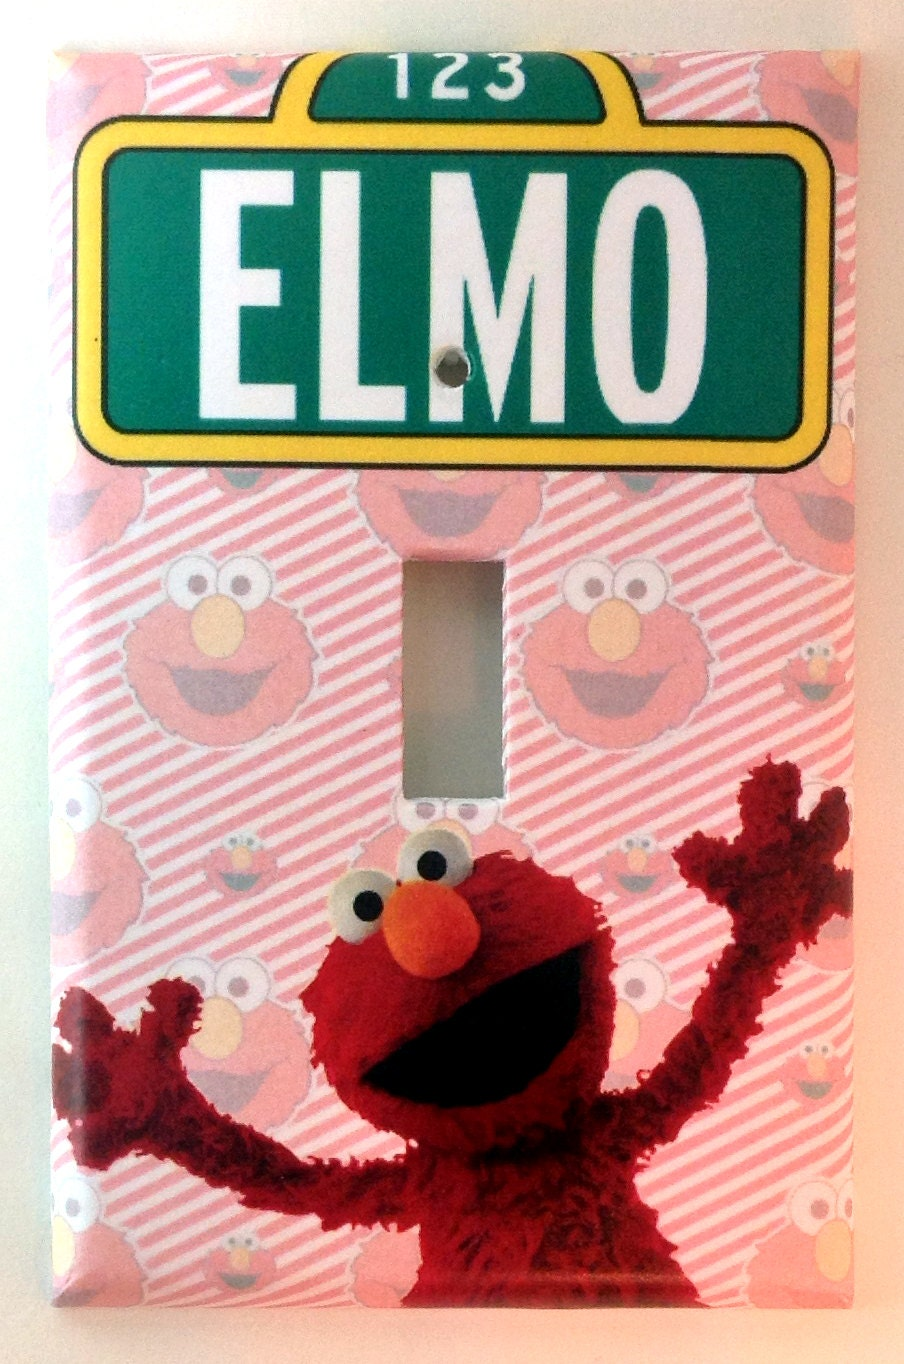 elmo buddhist single men Buddhist personals ads for men & women to meet each other a social network for singles interested in buddhism.